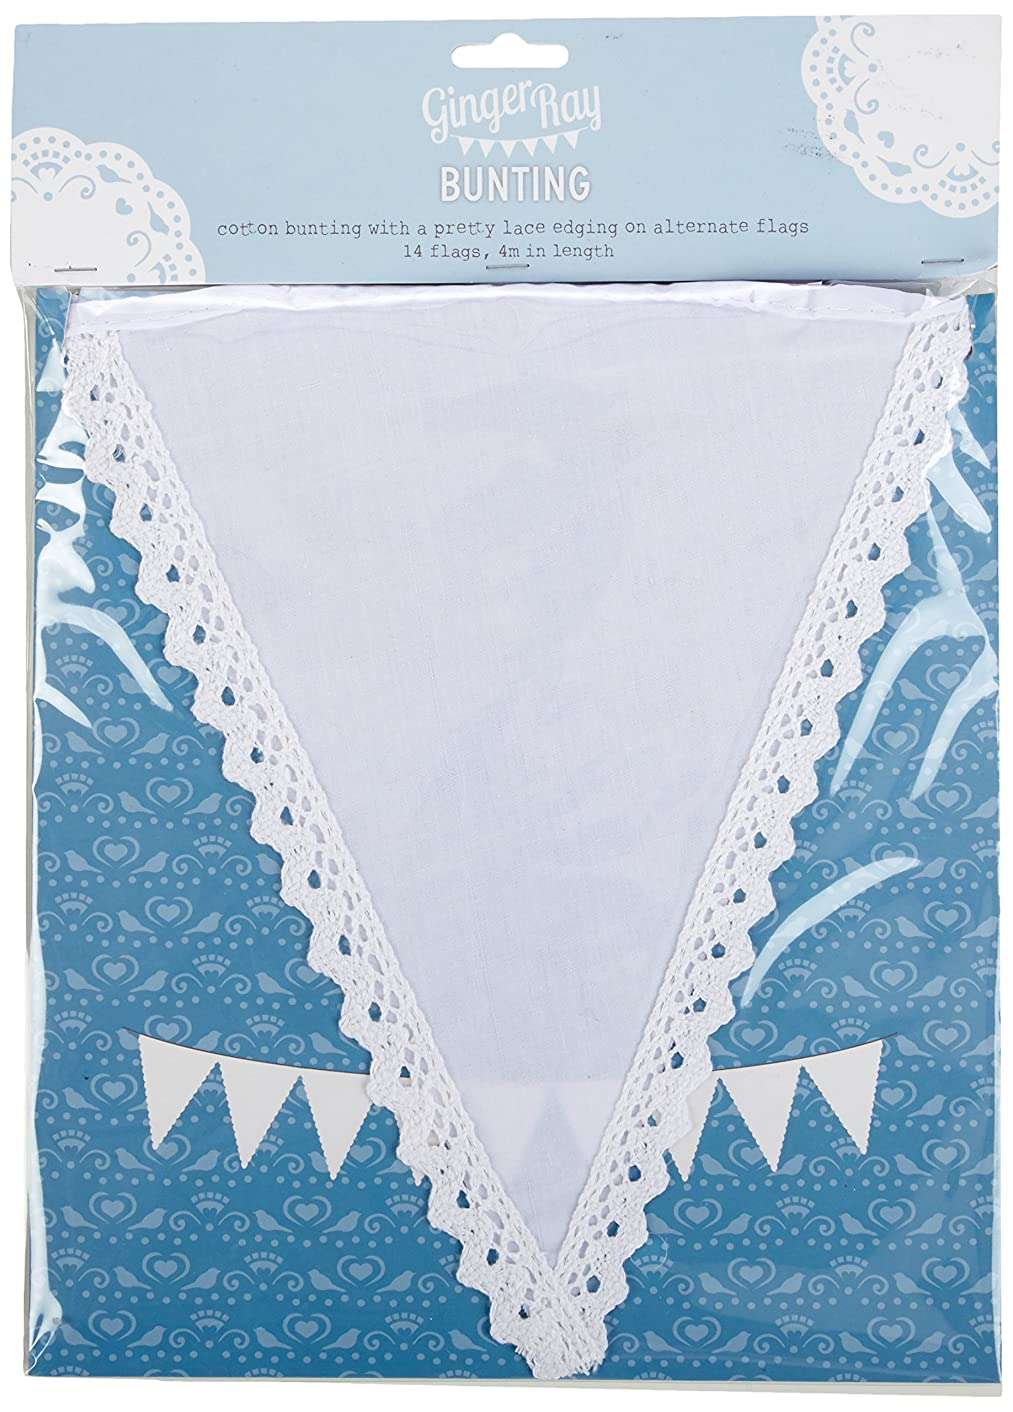 Ginger Ray VL-205 Cotton Fabric Bunting With Alternate Lace Edging Banner, White